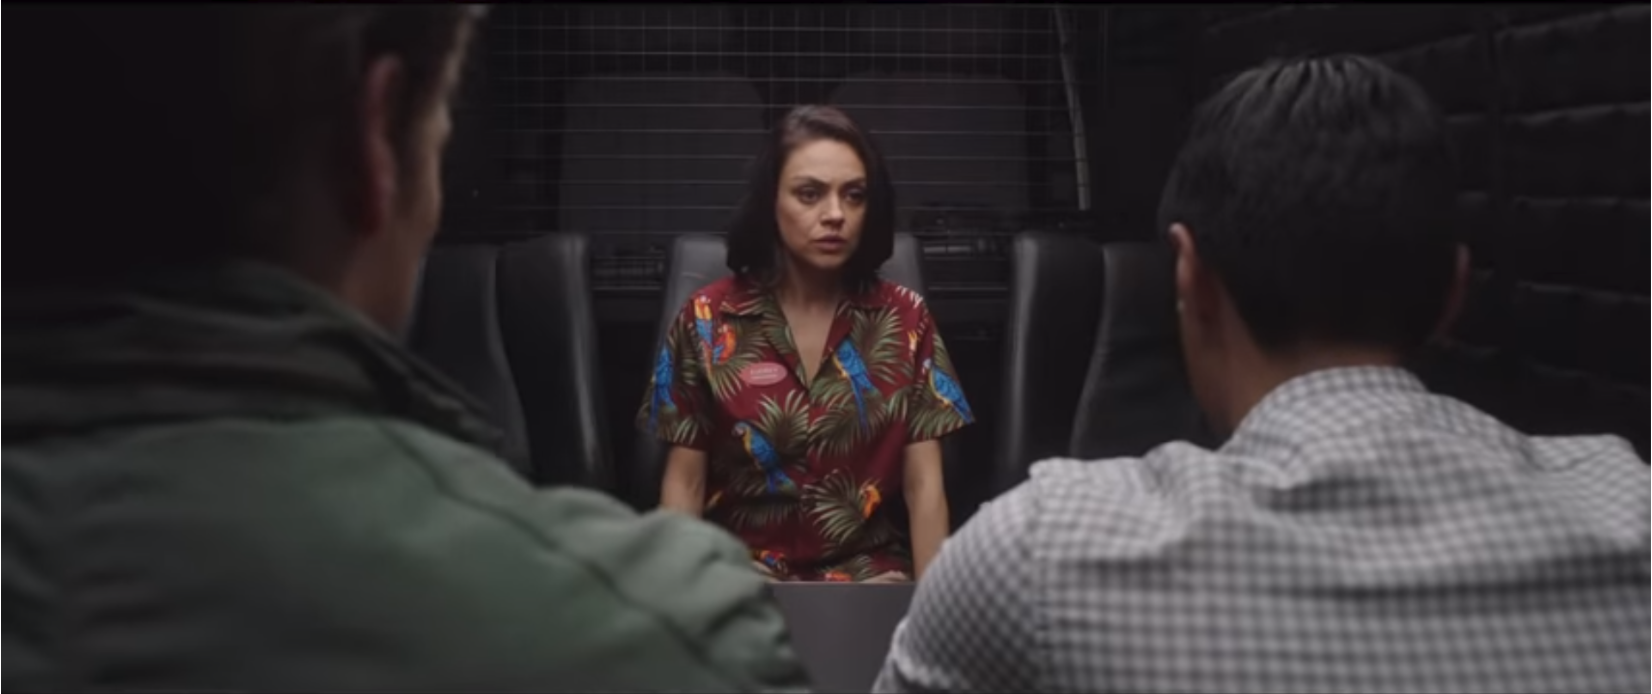 The Spy Who Dumped me (2018 movie) Hawaiian Shirts